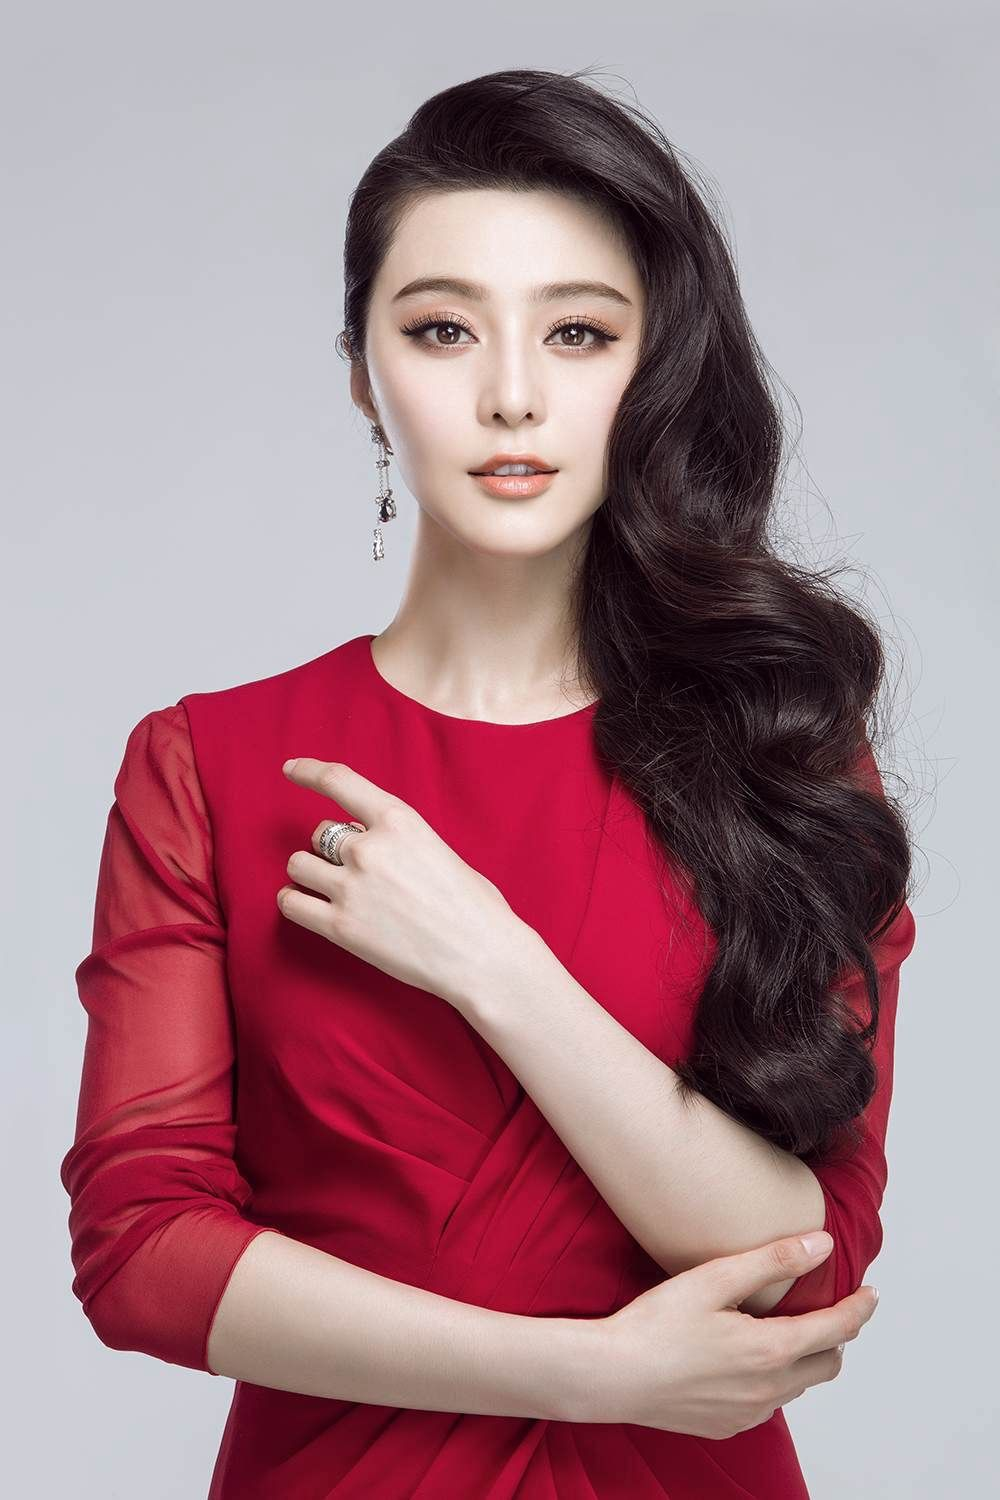 fitzpatrick asian personals Elitesingles makes it easy to find and connect with like-minded asian singles  looking for long-lasting romance our goal is to find the most compatible singles  in.